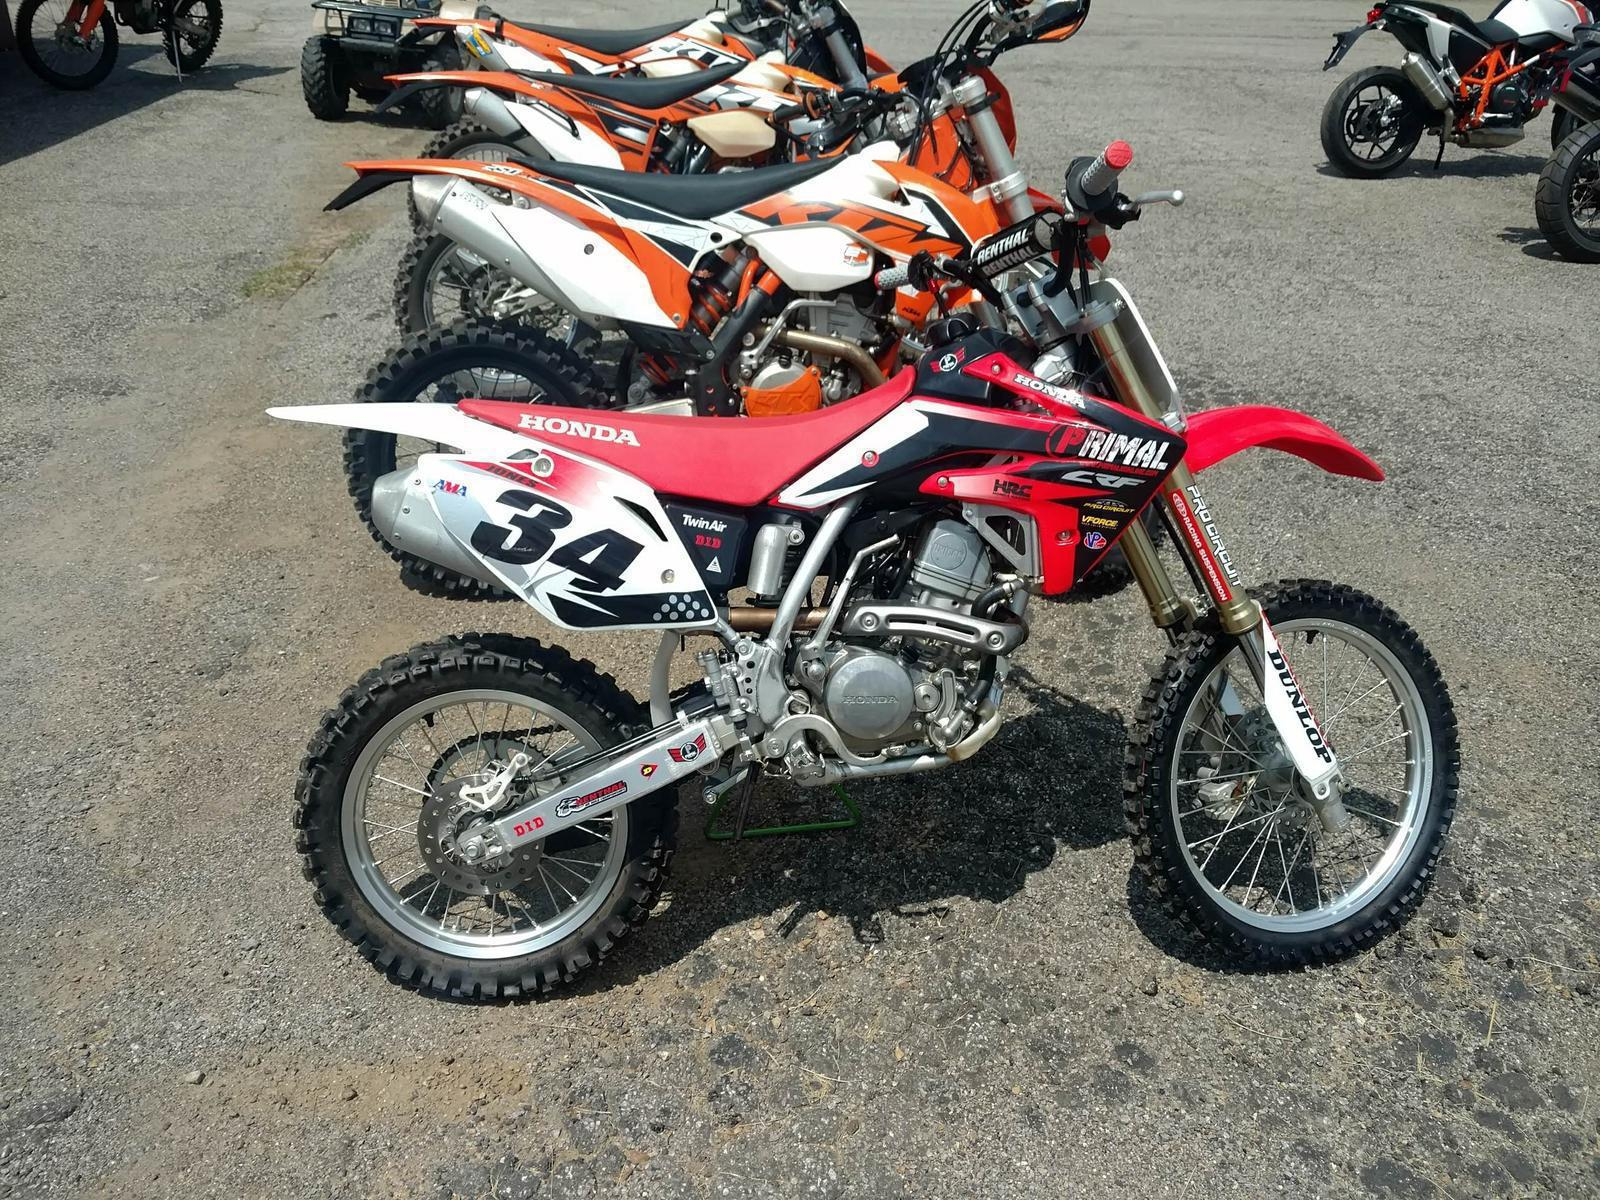 2014 Honda CRF 150 R for sale in Canfield OH